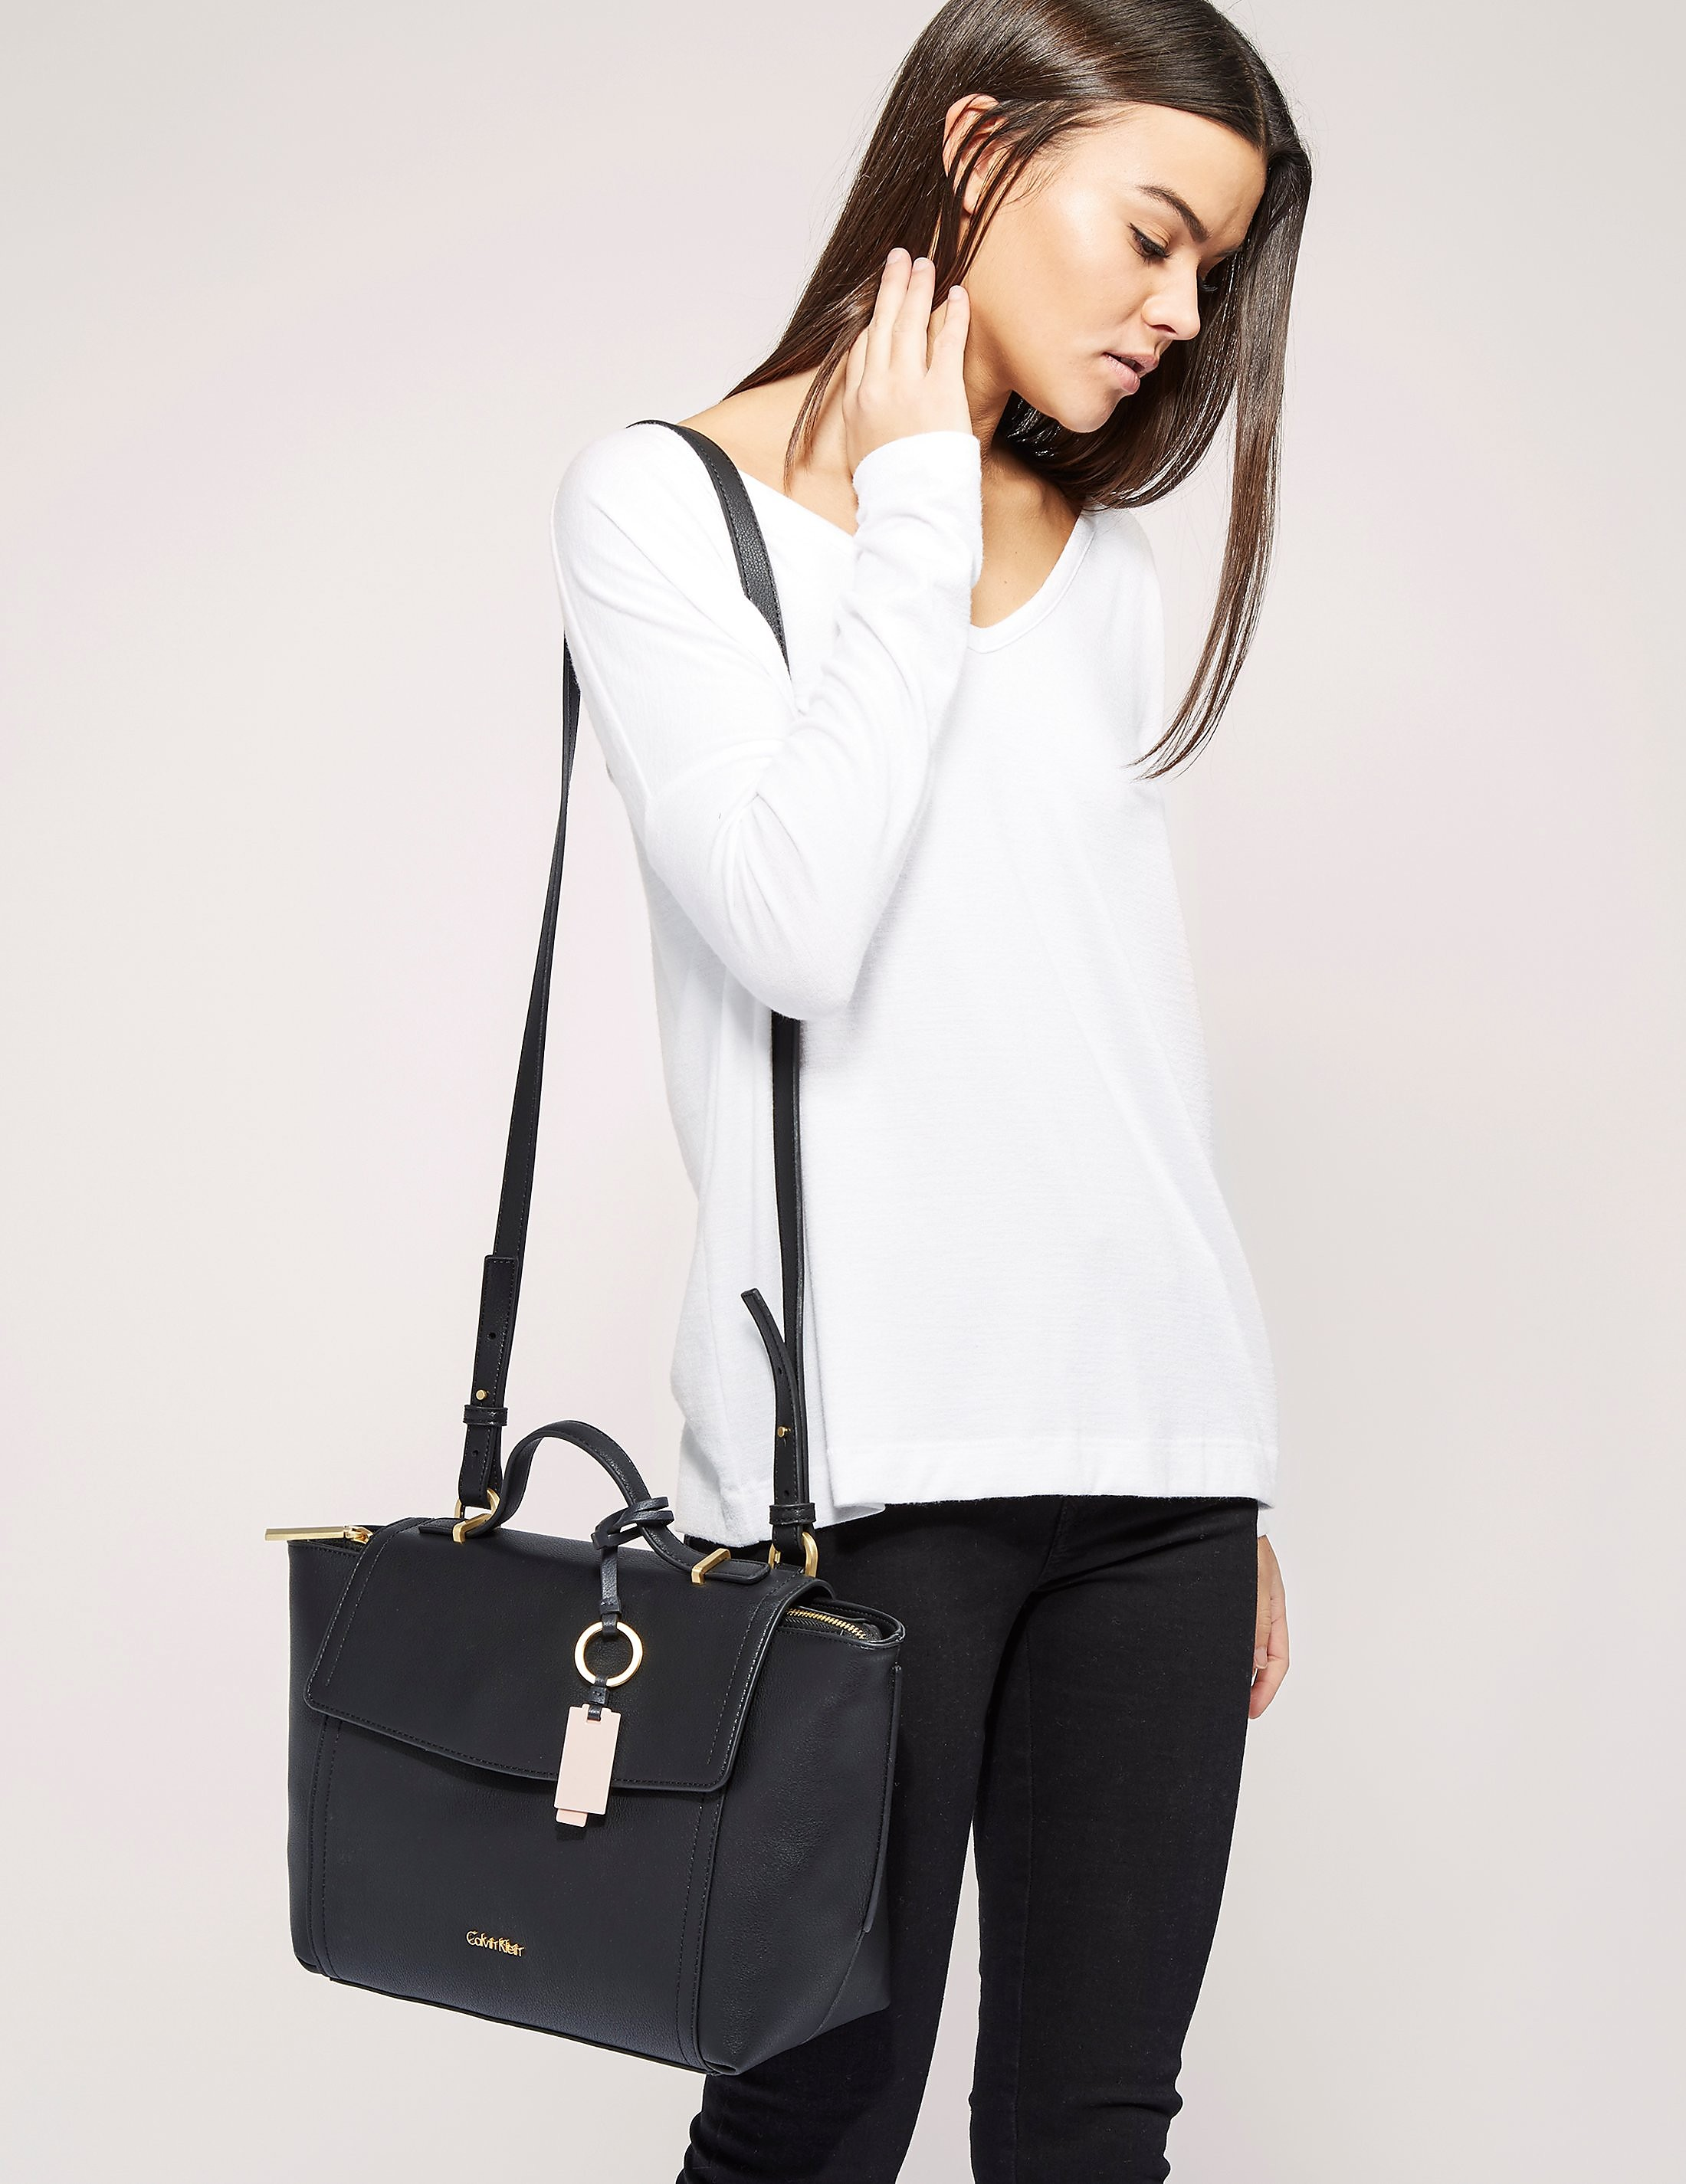 Calvin Klein Top Handle Satchel